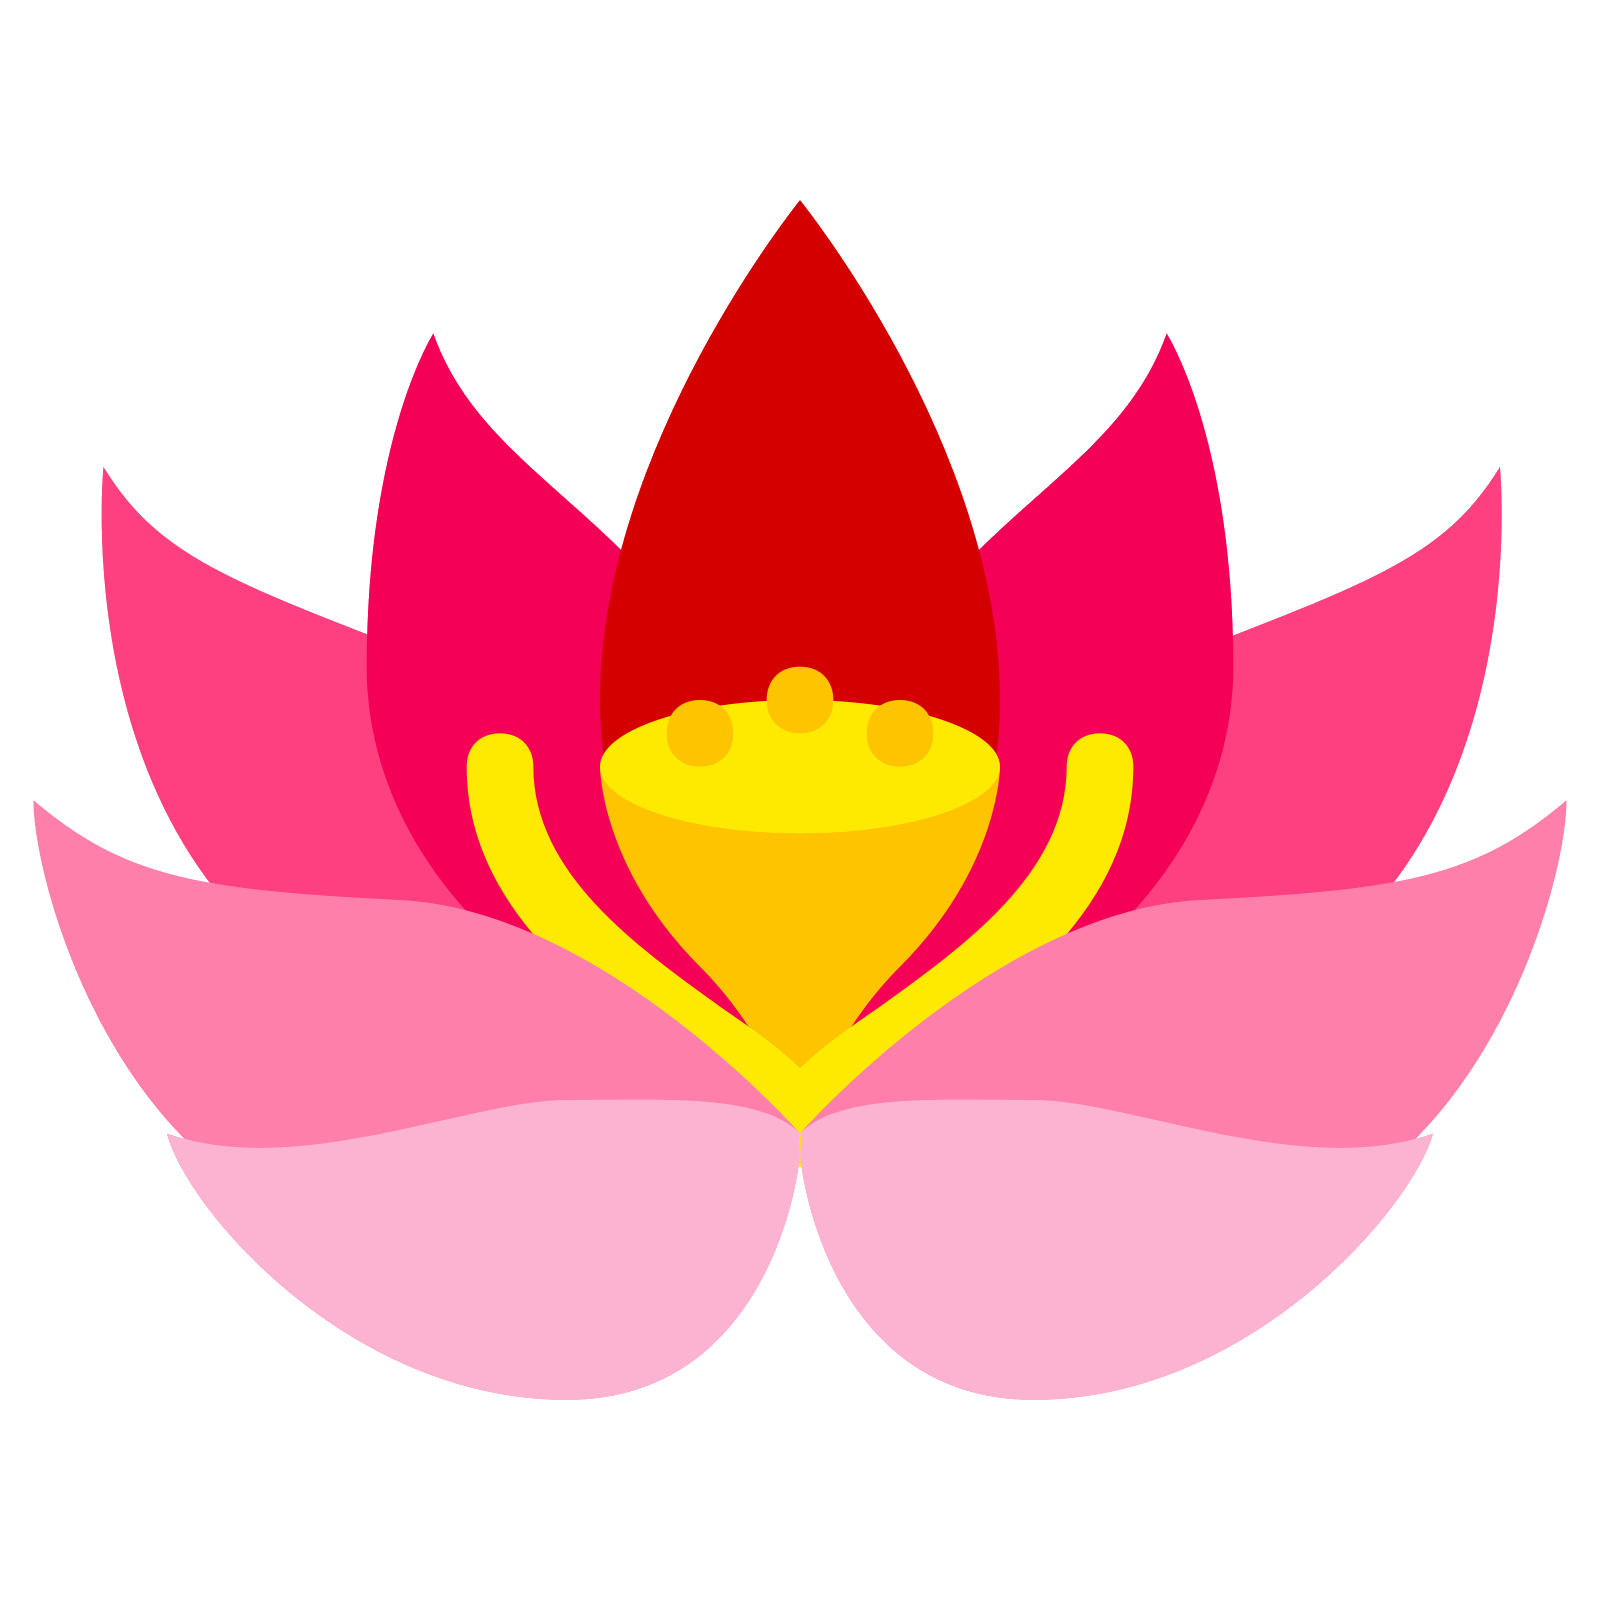 Flower bjp image collections. Lotus vector png